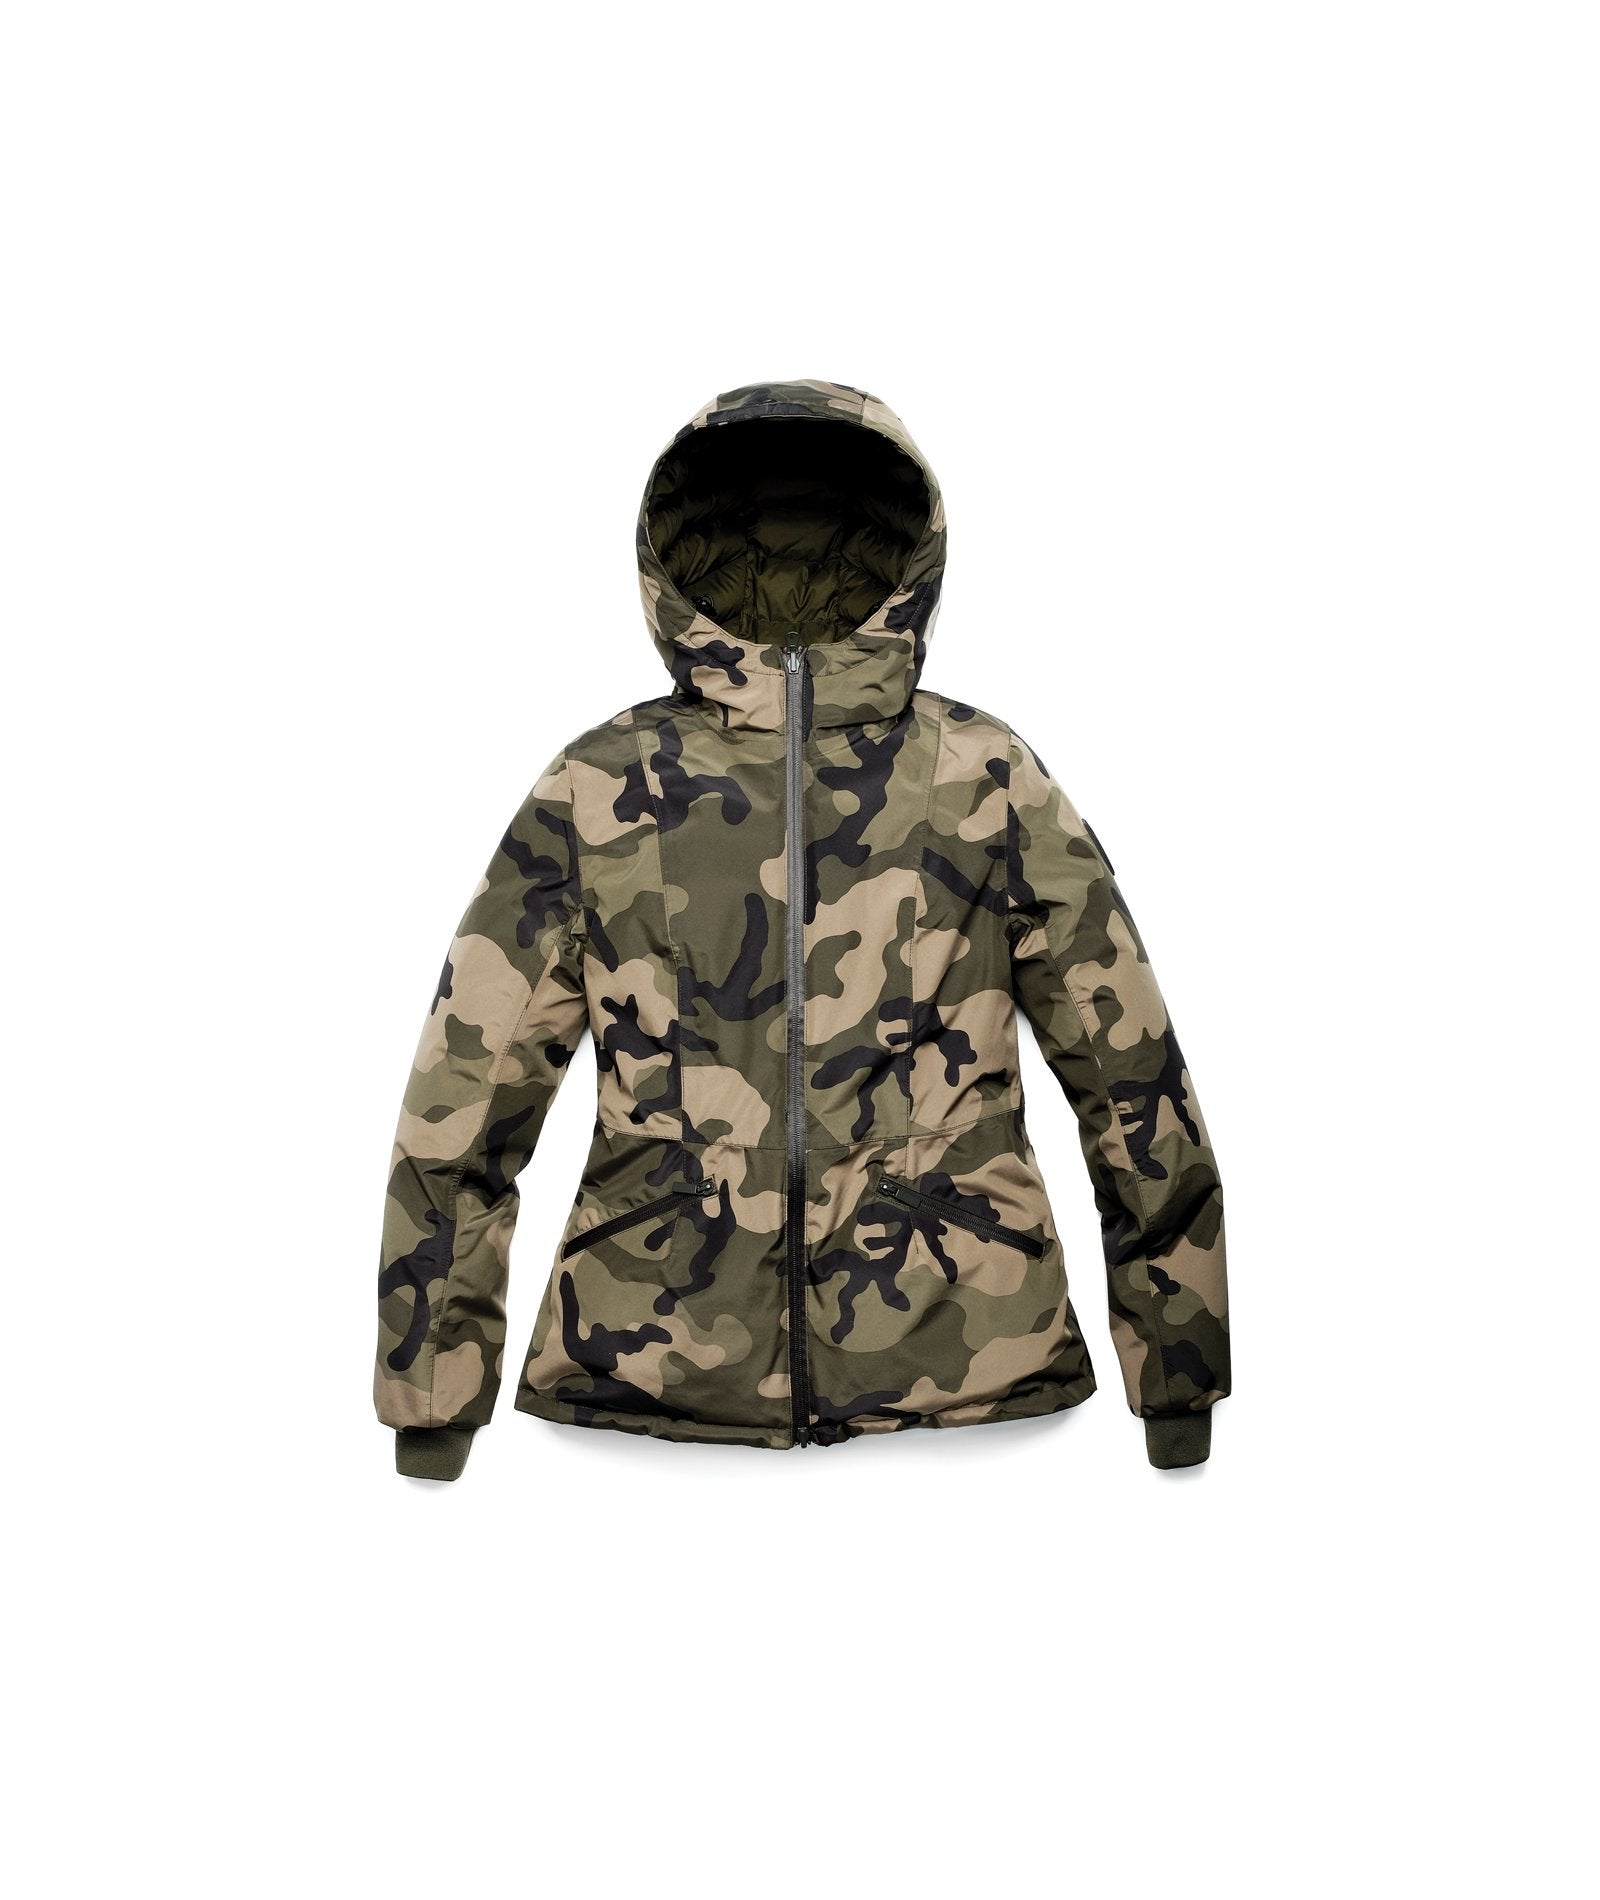 A women's two in one reversible hip length down jacket, one side is quilted and one side is solid waterproof fabric in Camo